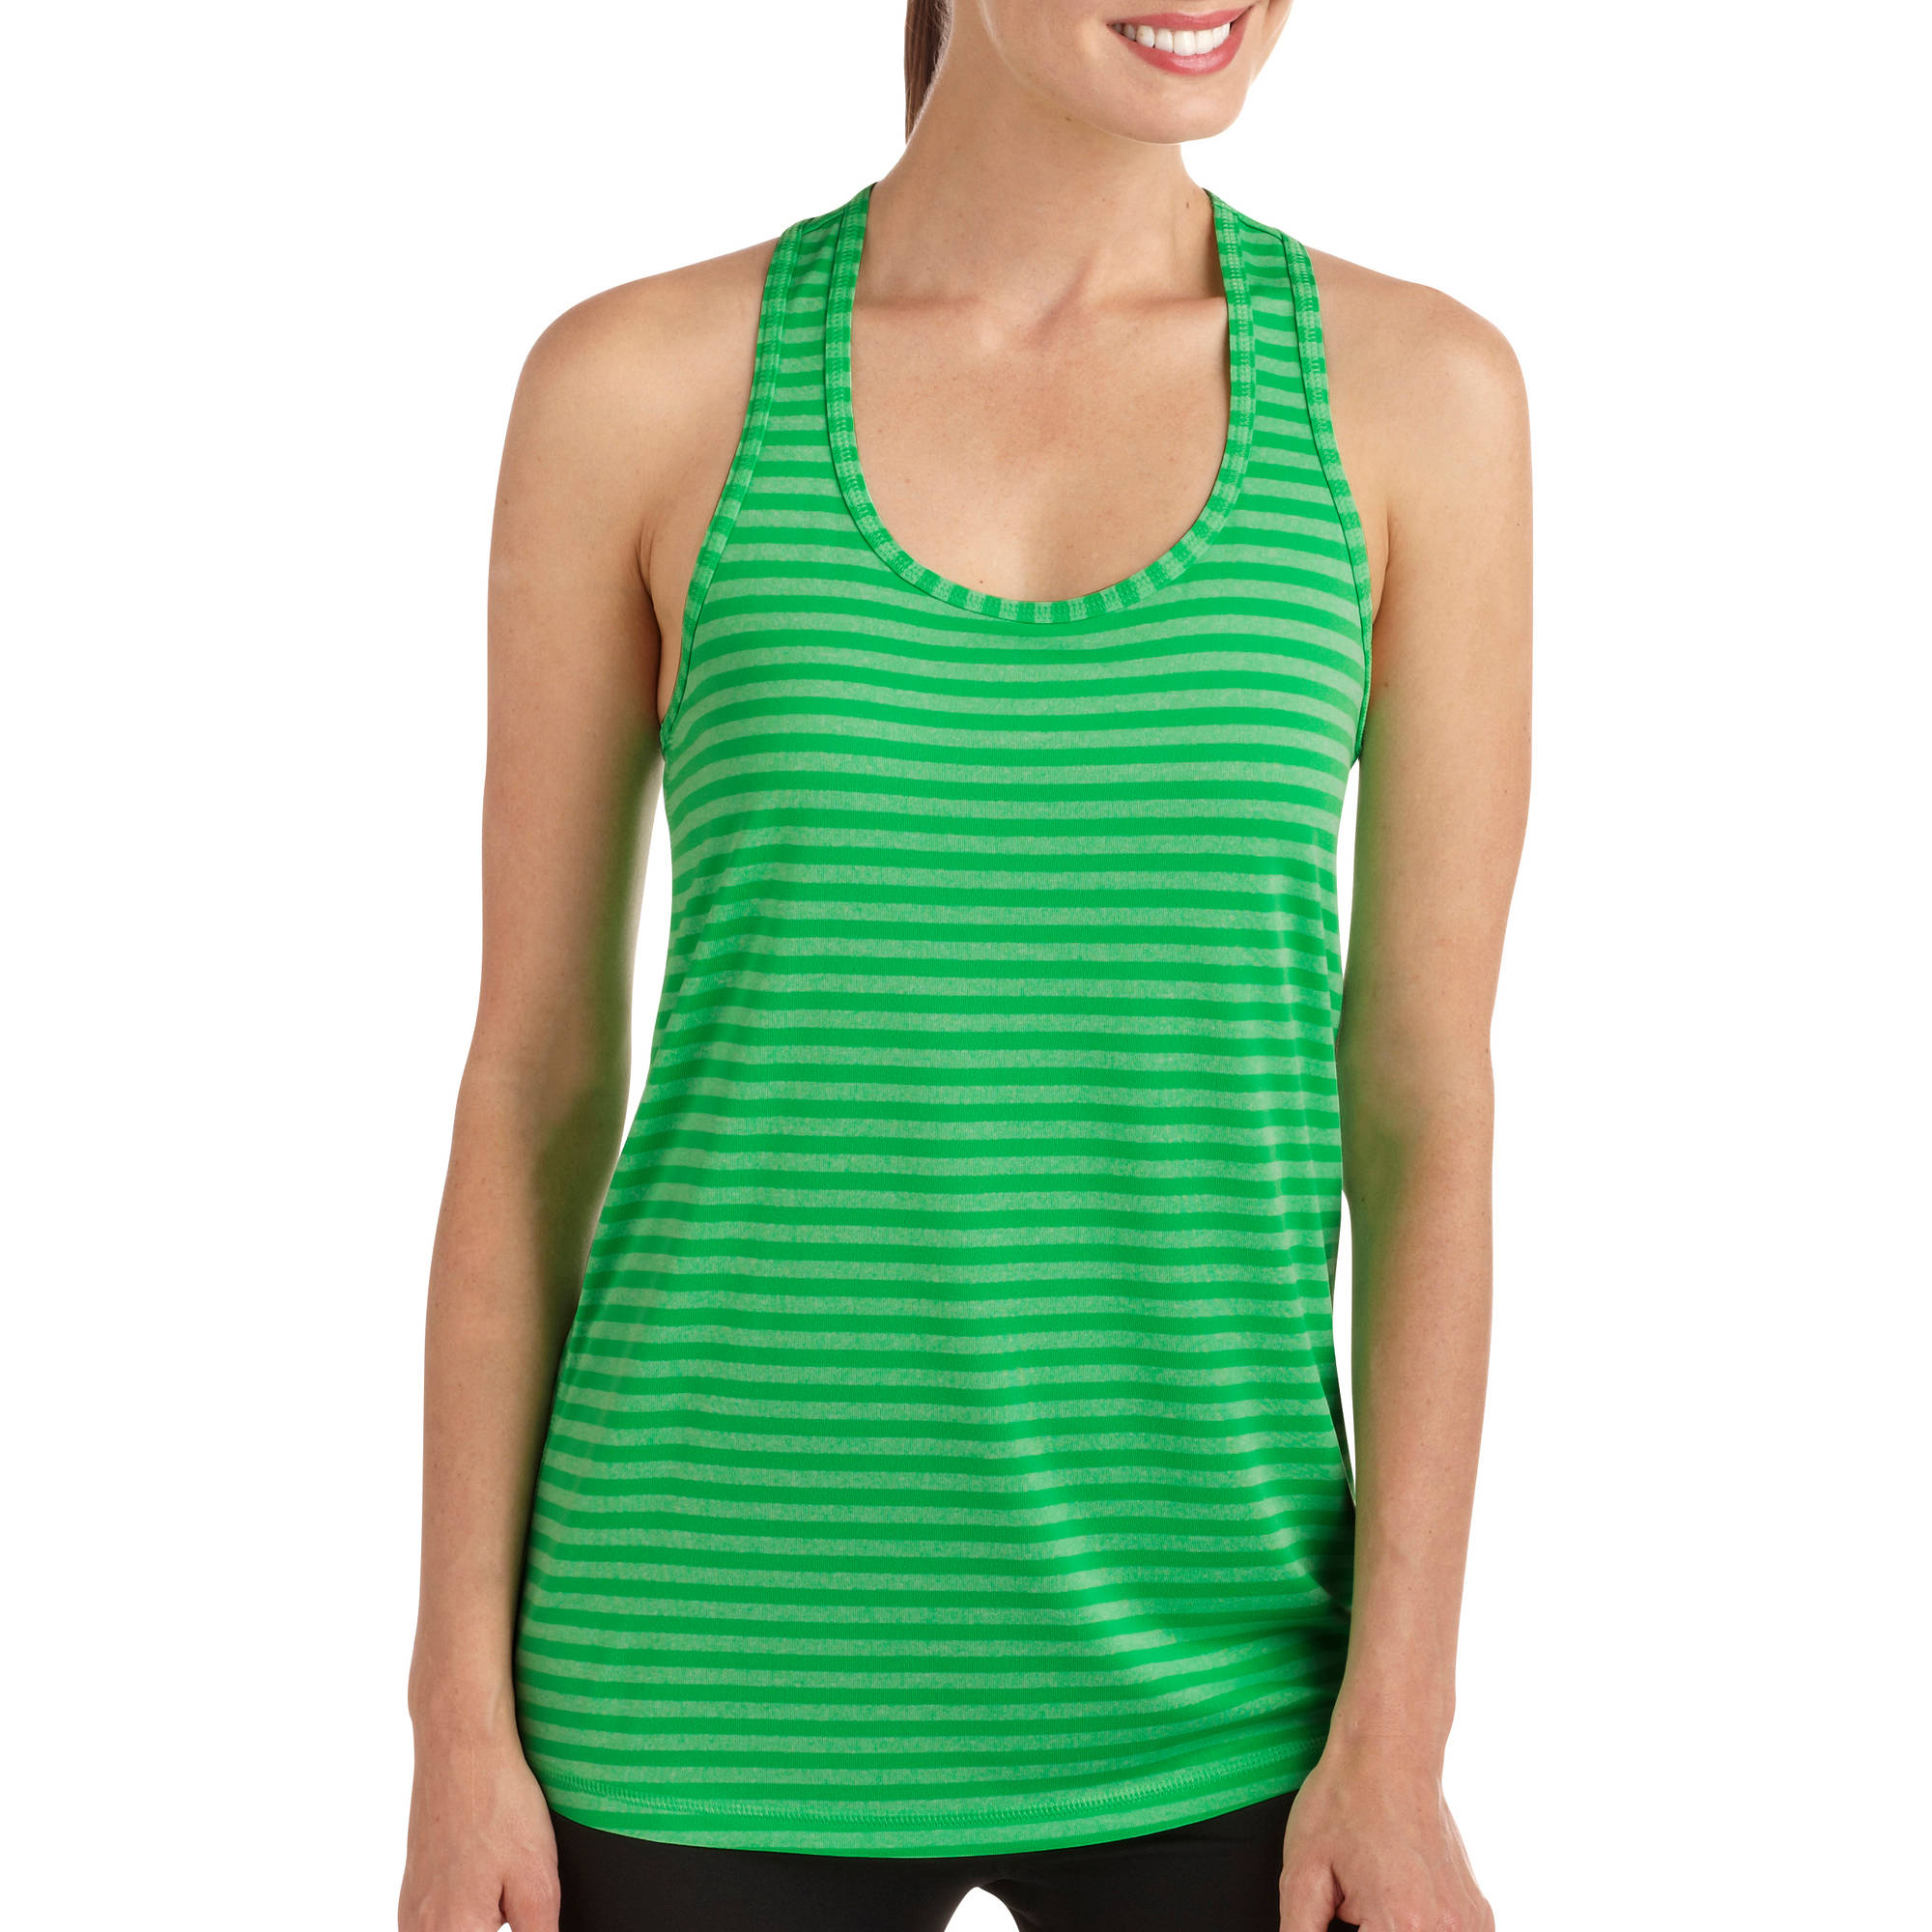 Danskin Now Women's Striped Performance Racerback Tank with Wicking